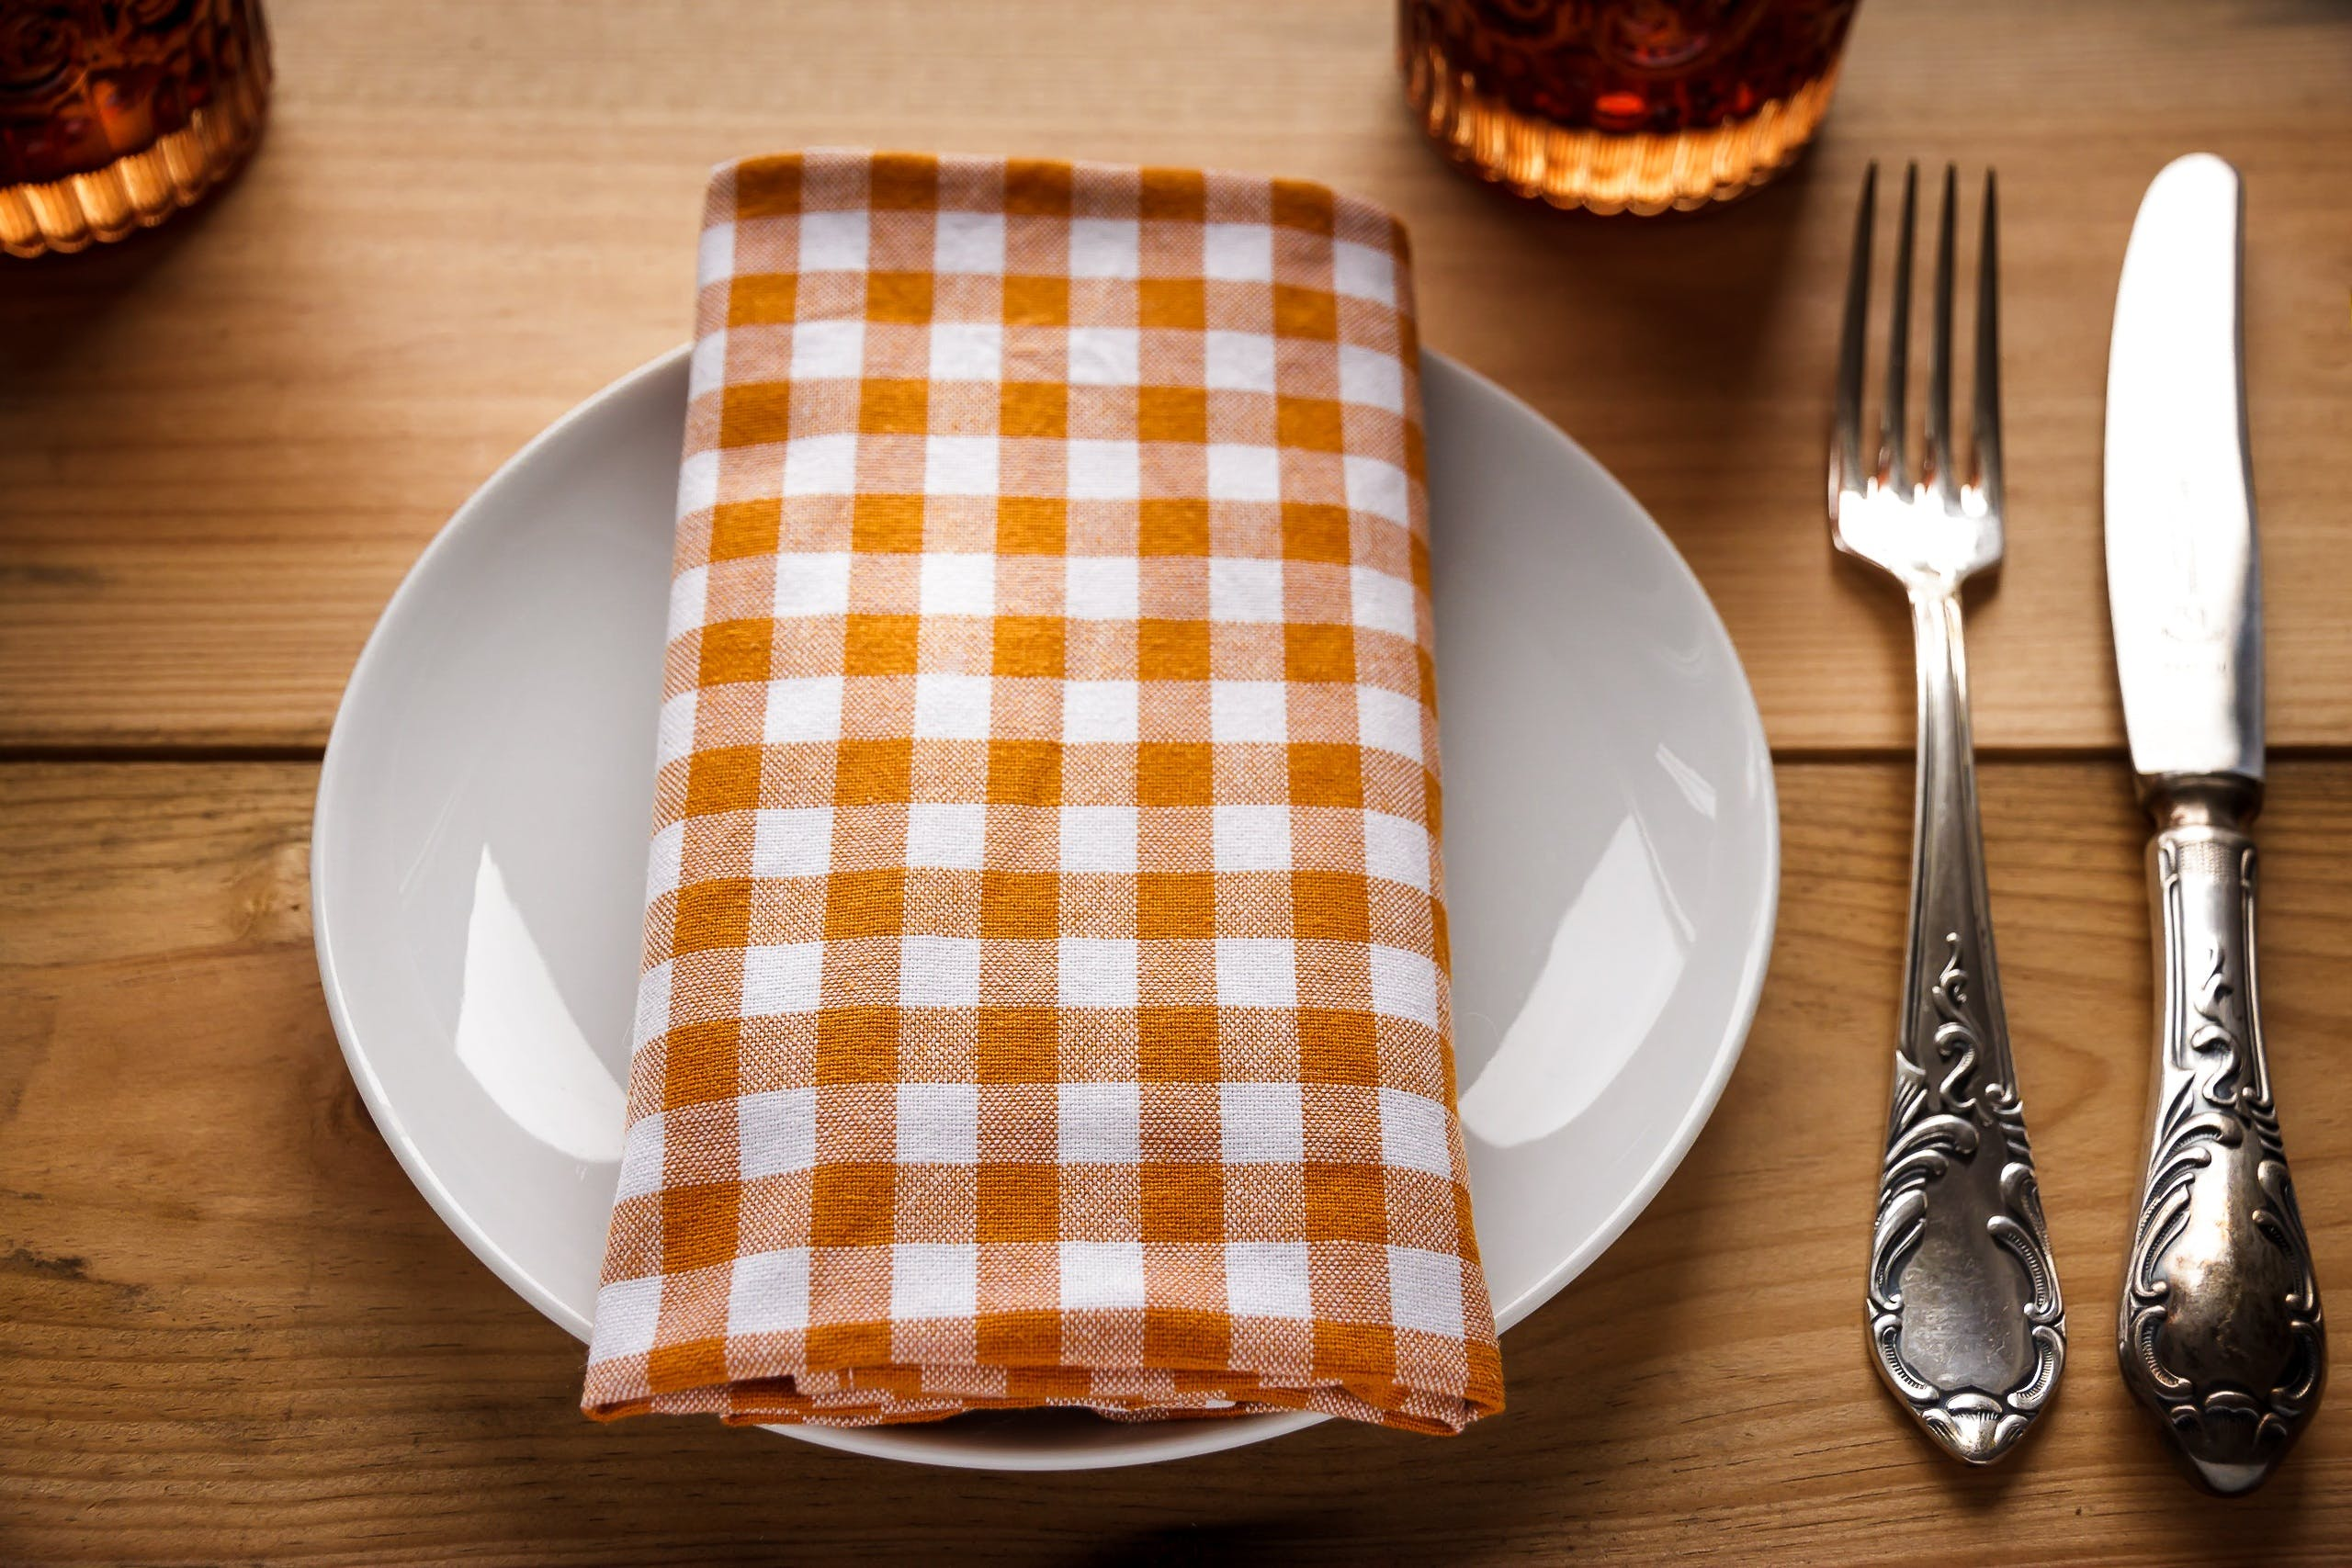 Free stock photo of plate, restaurant, table, knife